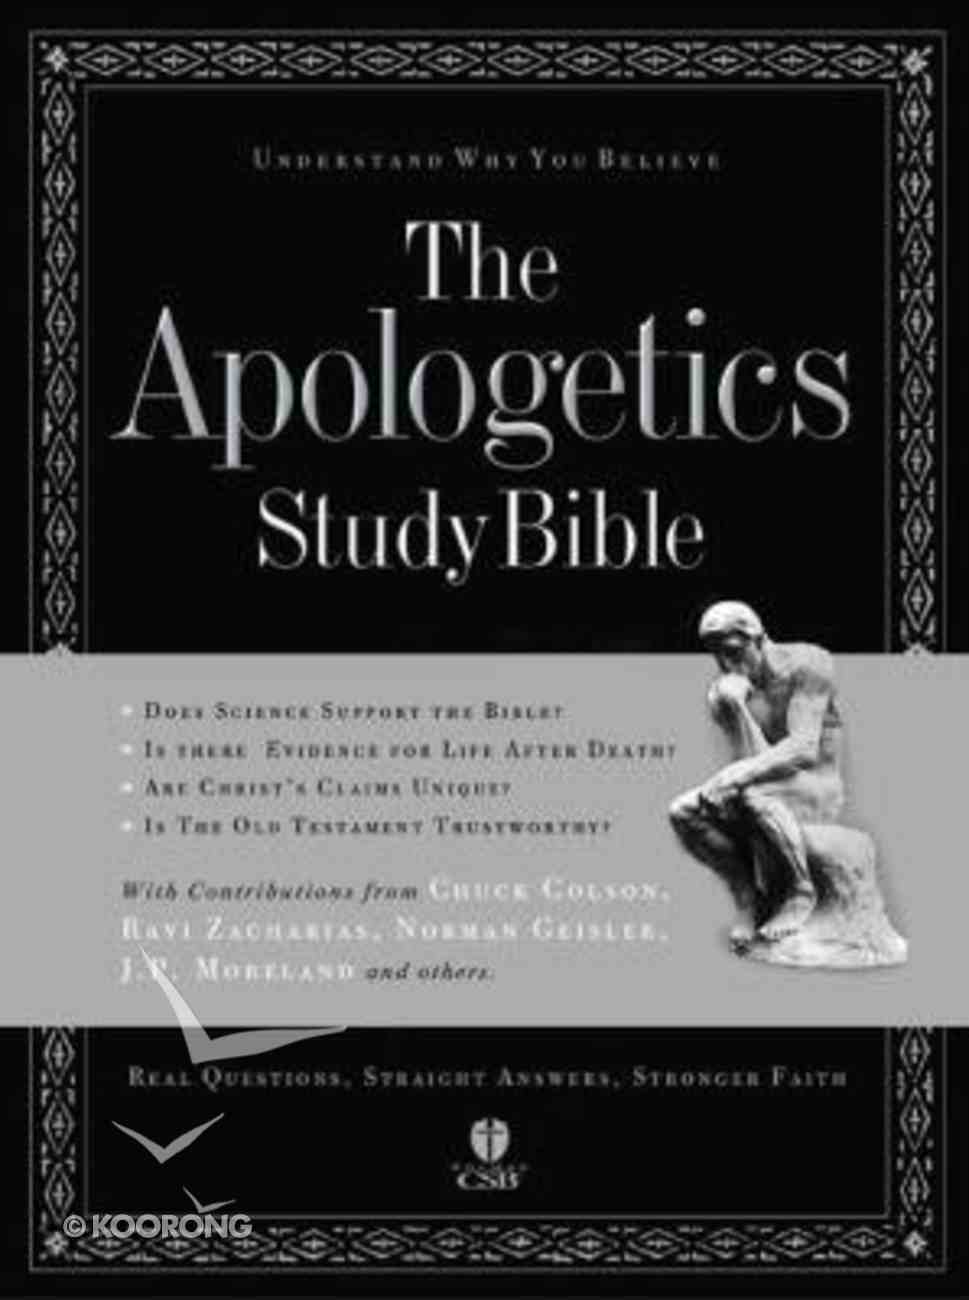 HCSB Apologetics Study Bible (Red Letter Edition) (Brown) Genuine Leather